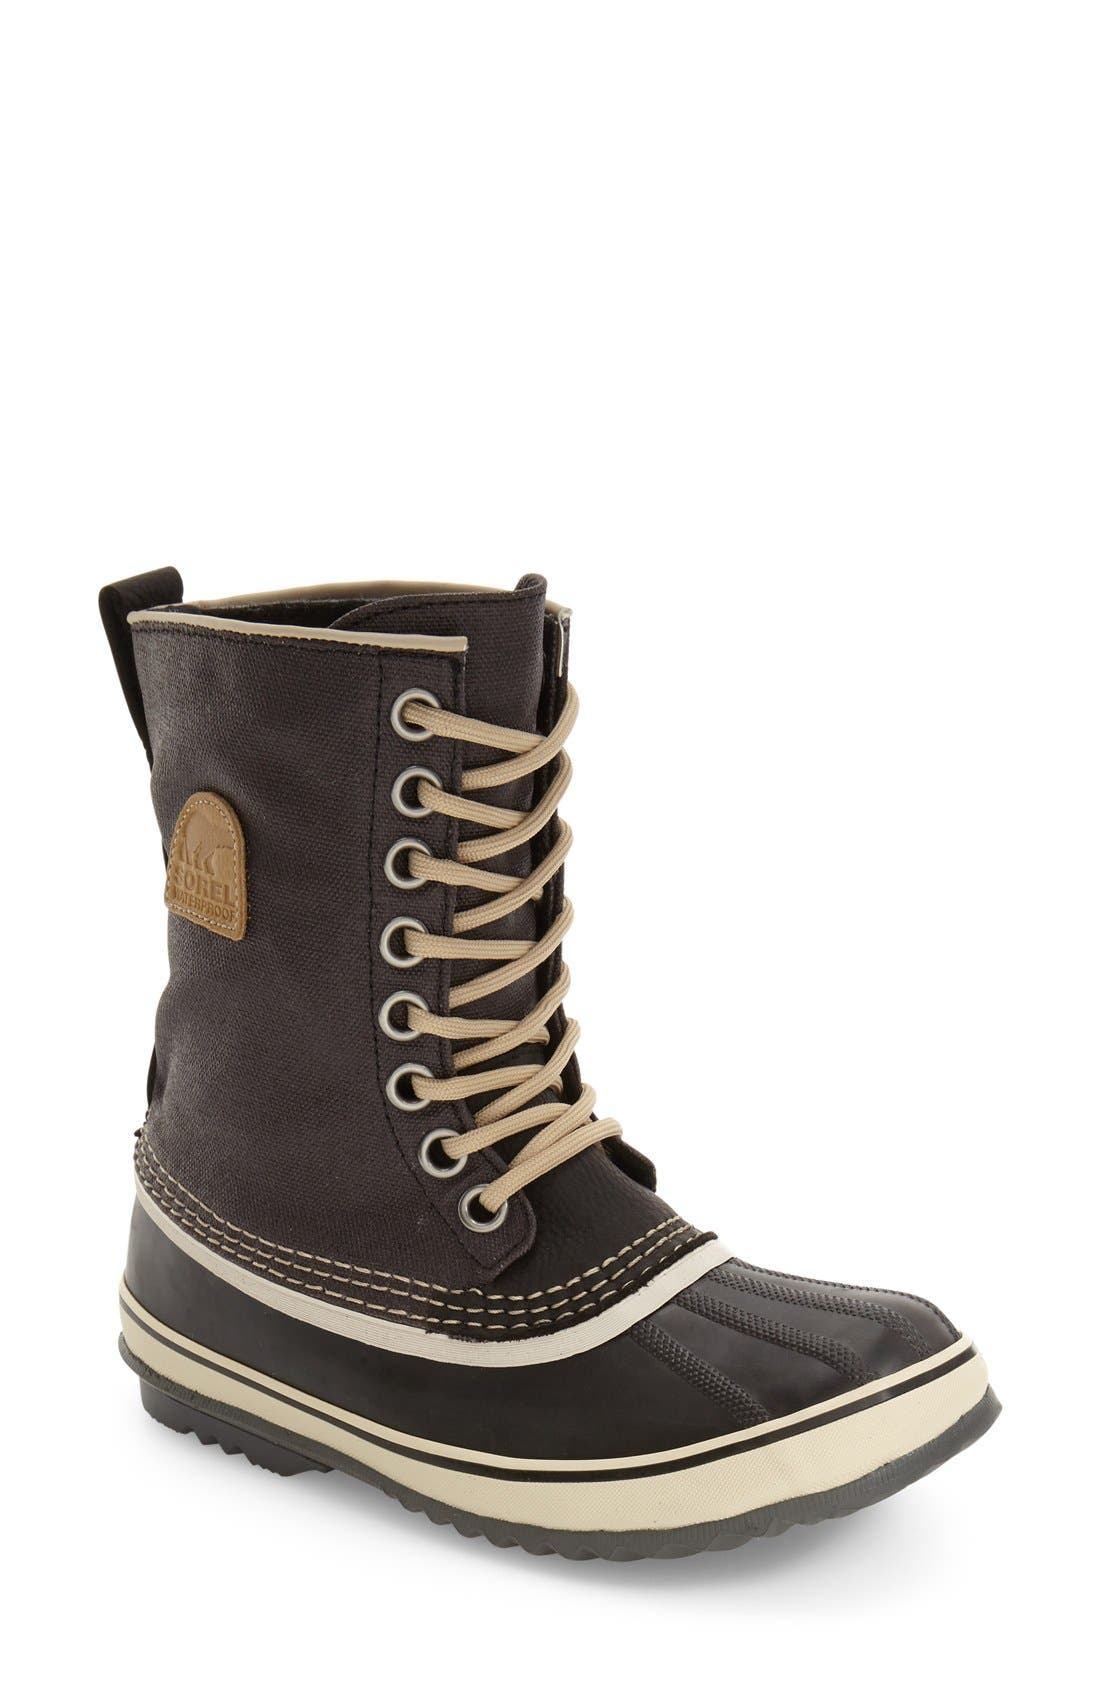 '1964 Premium' Waterproof Boot,                         Main,                         color, BLACK/ FOSSIL